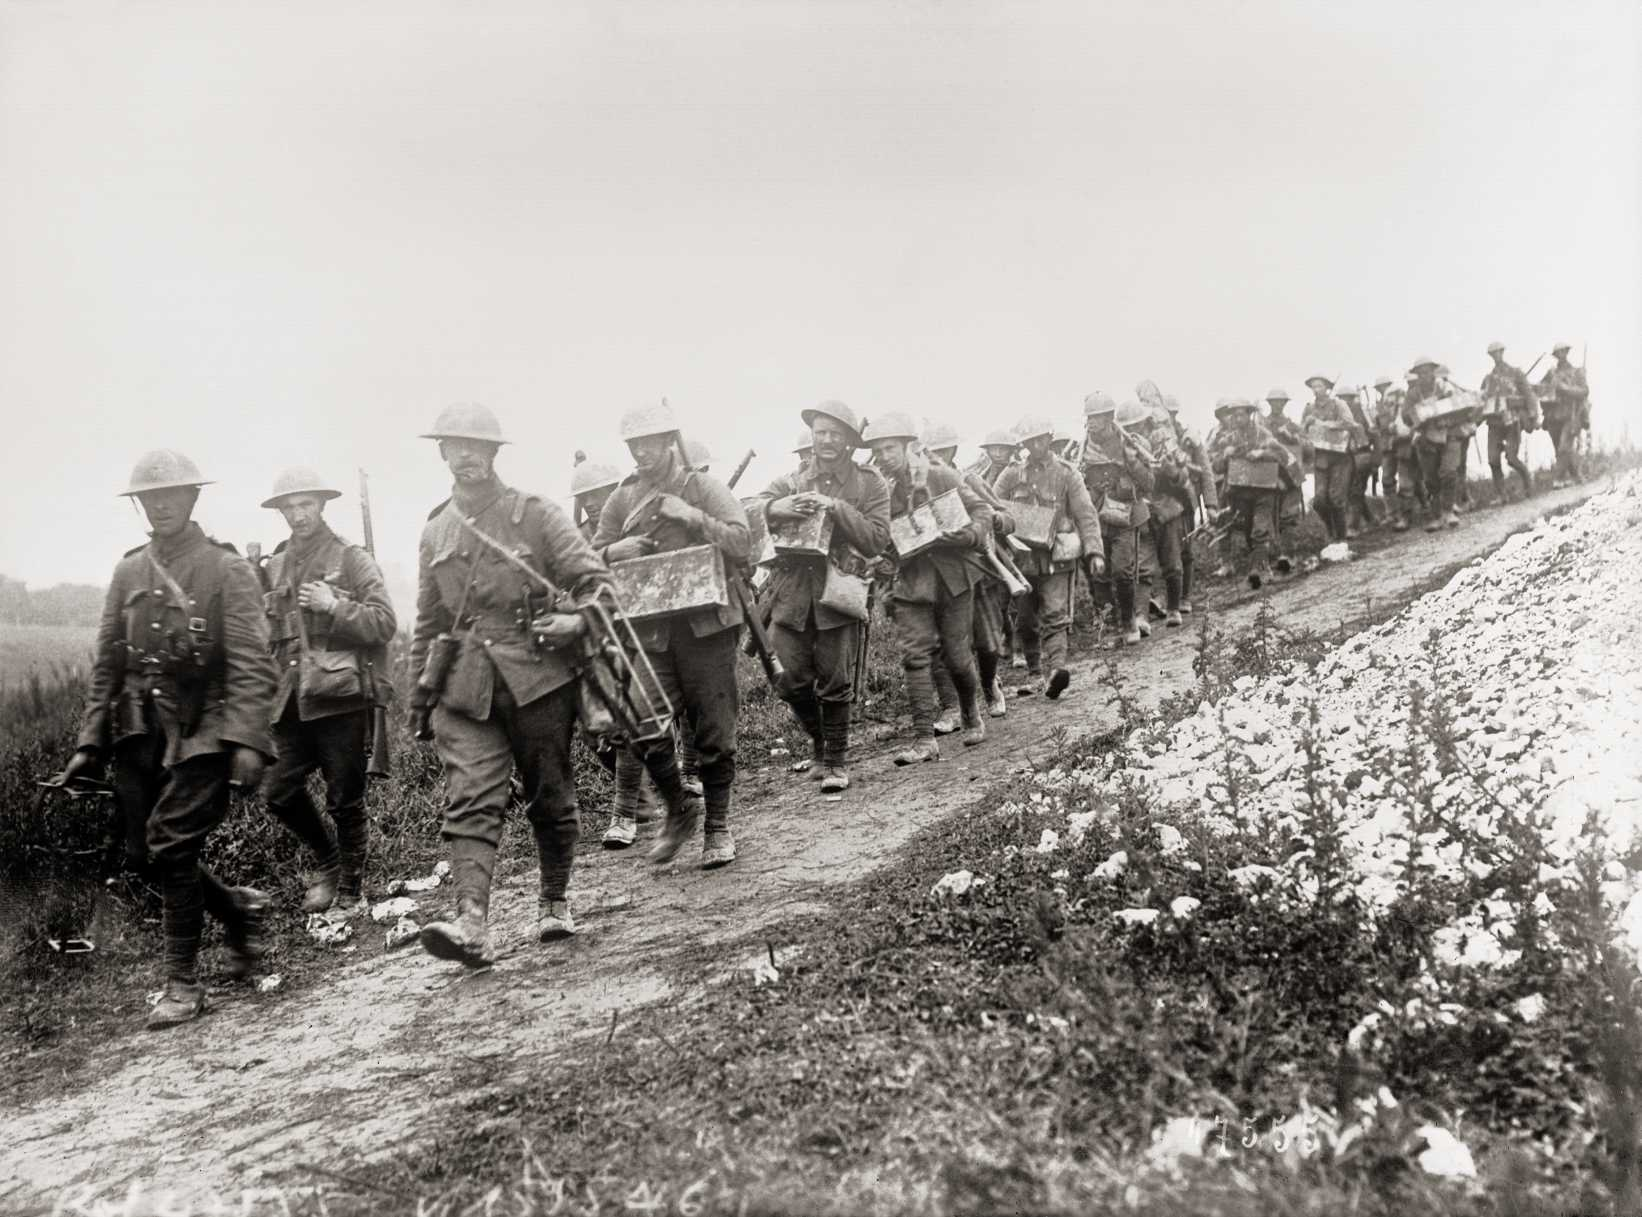 British offensive in the Somme (1916)